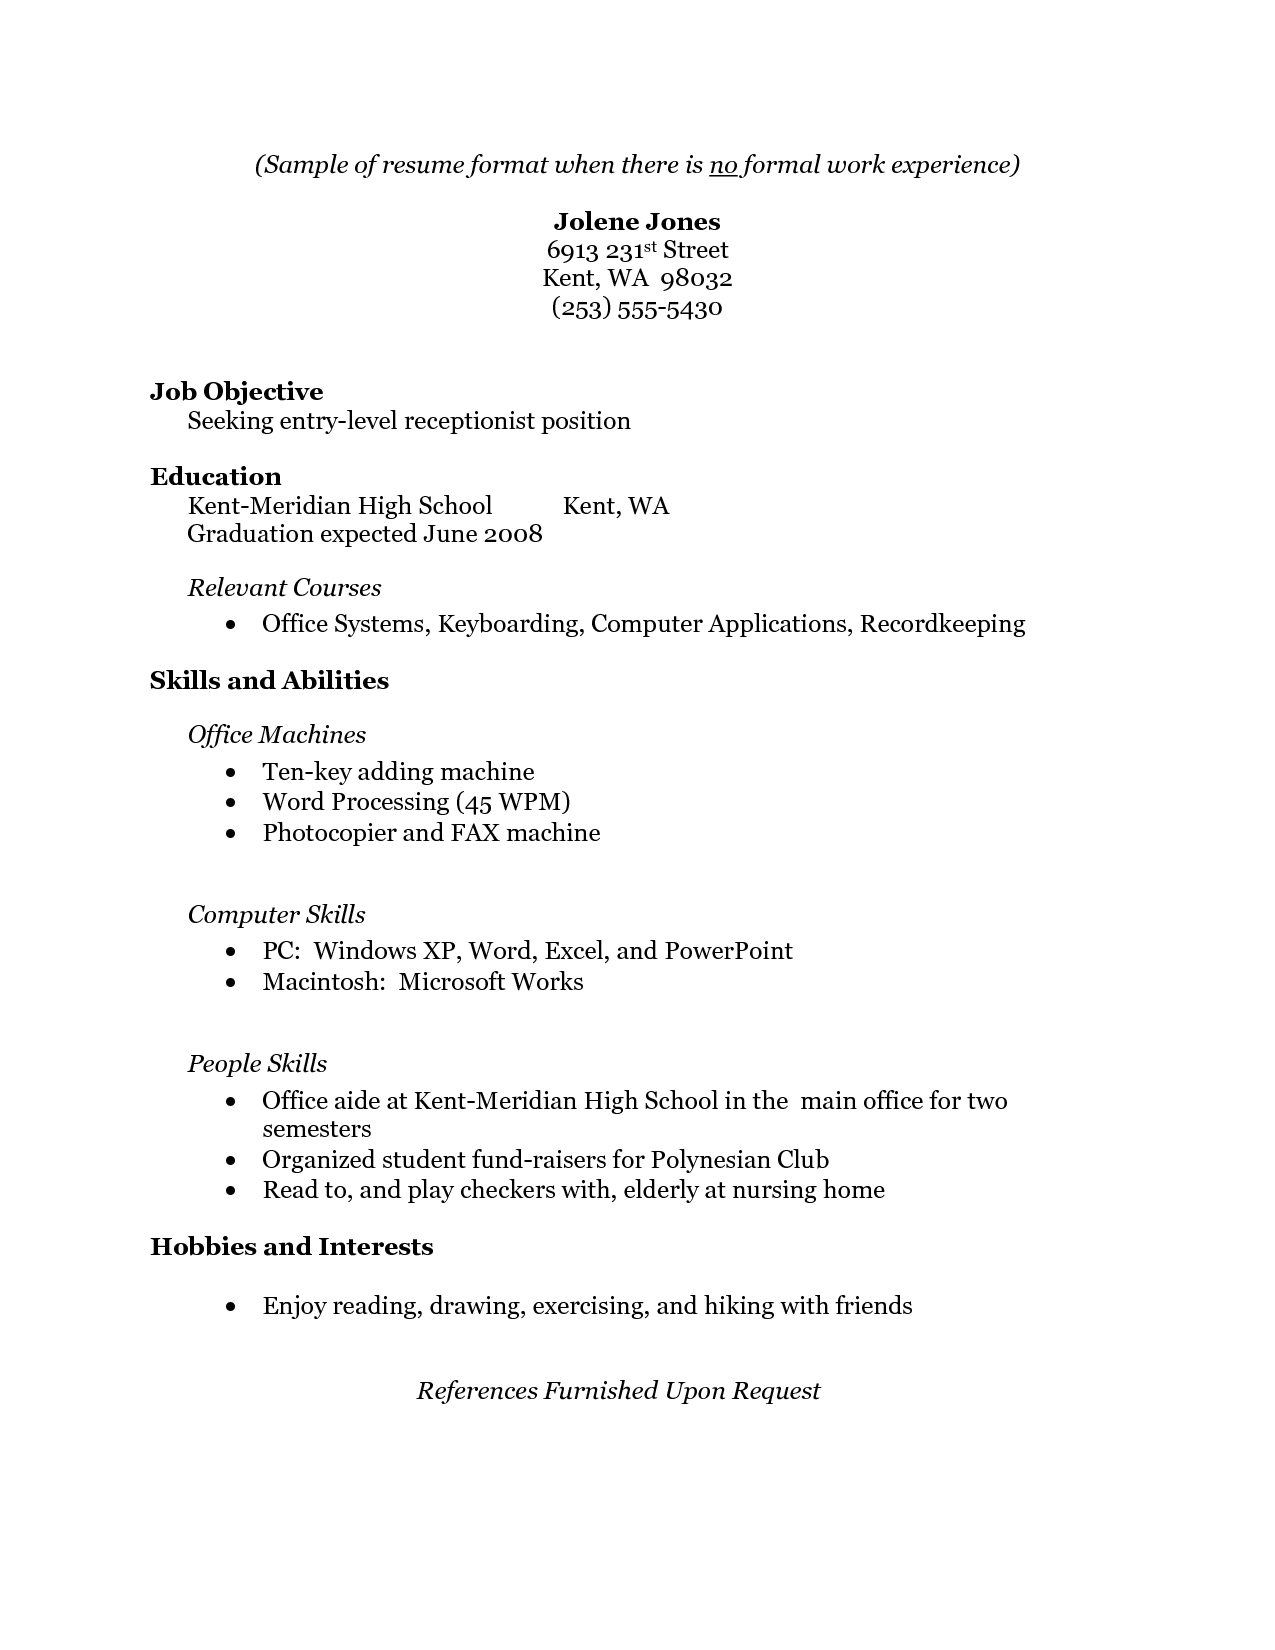 resume with no work experience samples